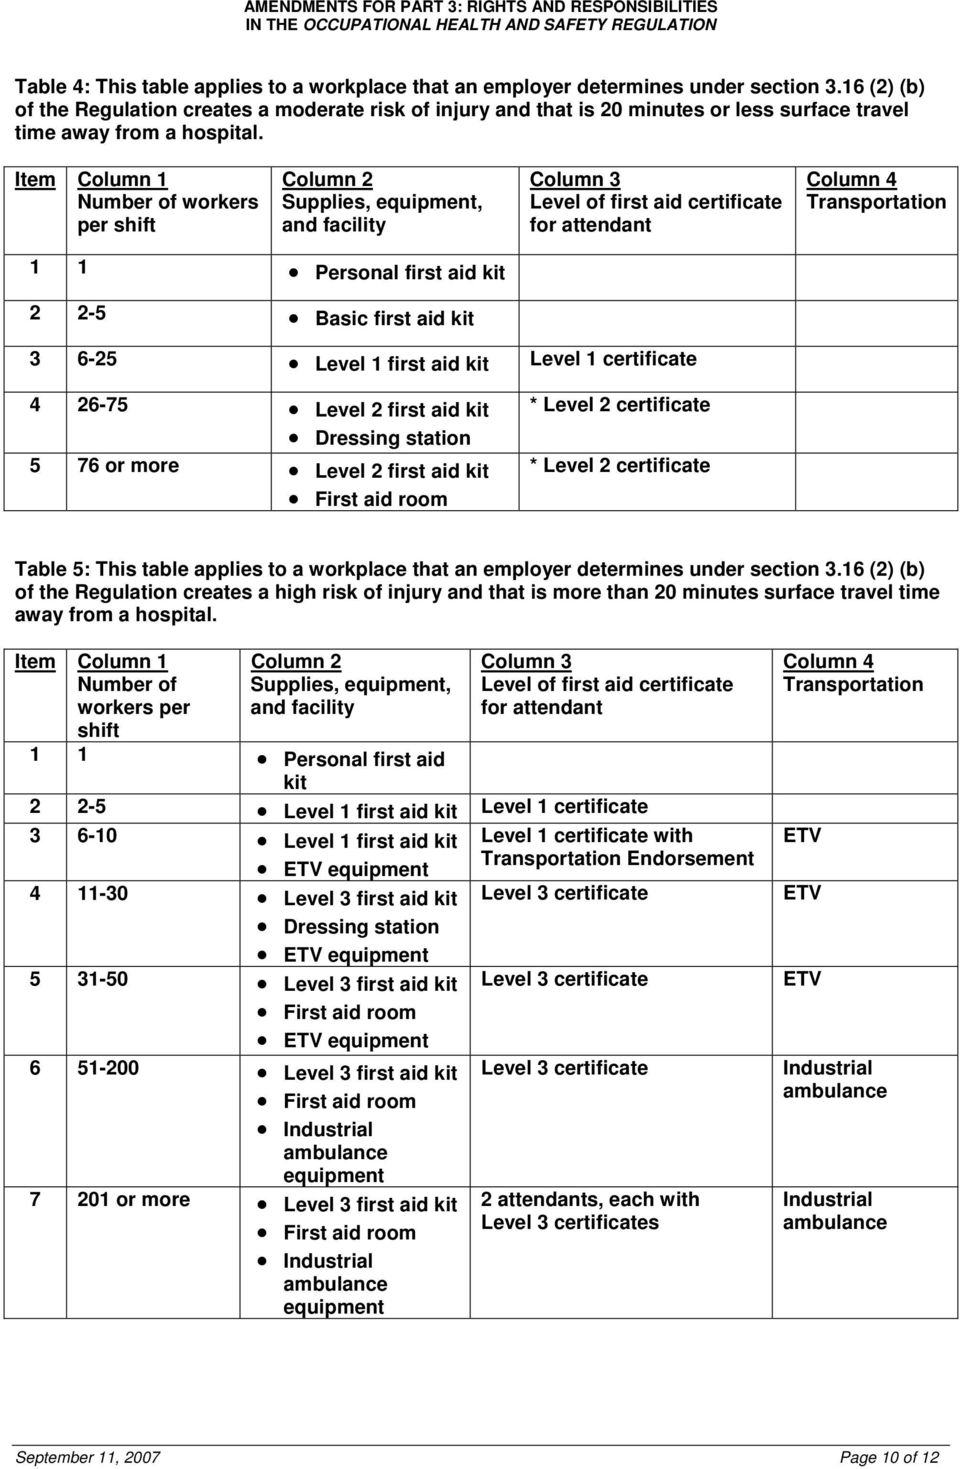 Item Column 1 Number of workers per shift Column 2 Supplies, equipment, and facility Column 3 Level of first aid certificate for attendant Column 4 Transportation 1 1 Personal first aid 2 2-5 Basic